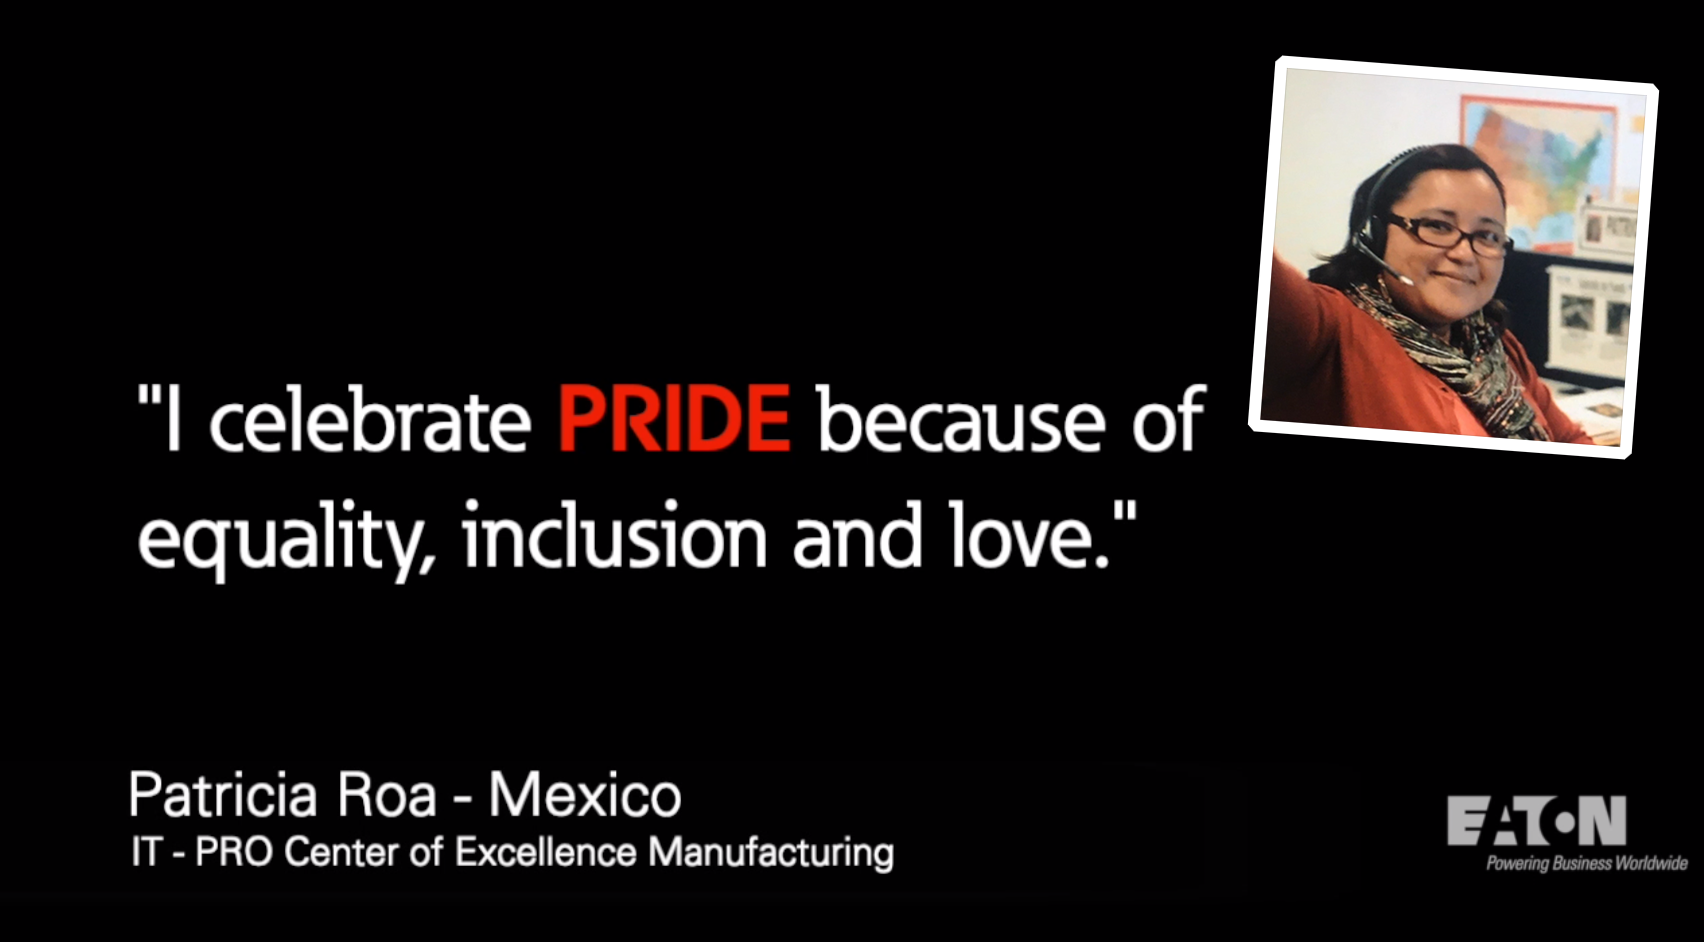 EATON Pride - diversity and inclusion - LGBTQ